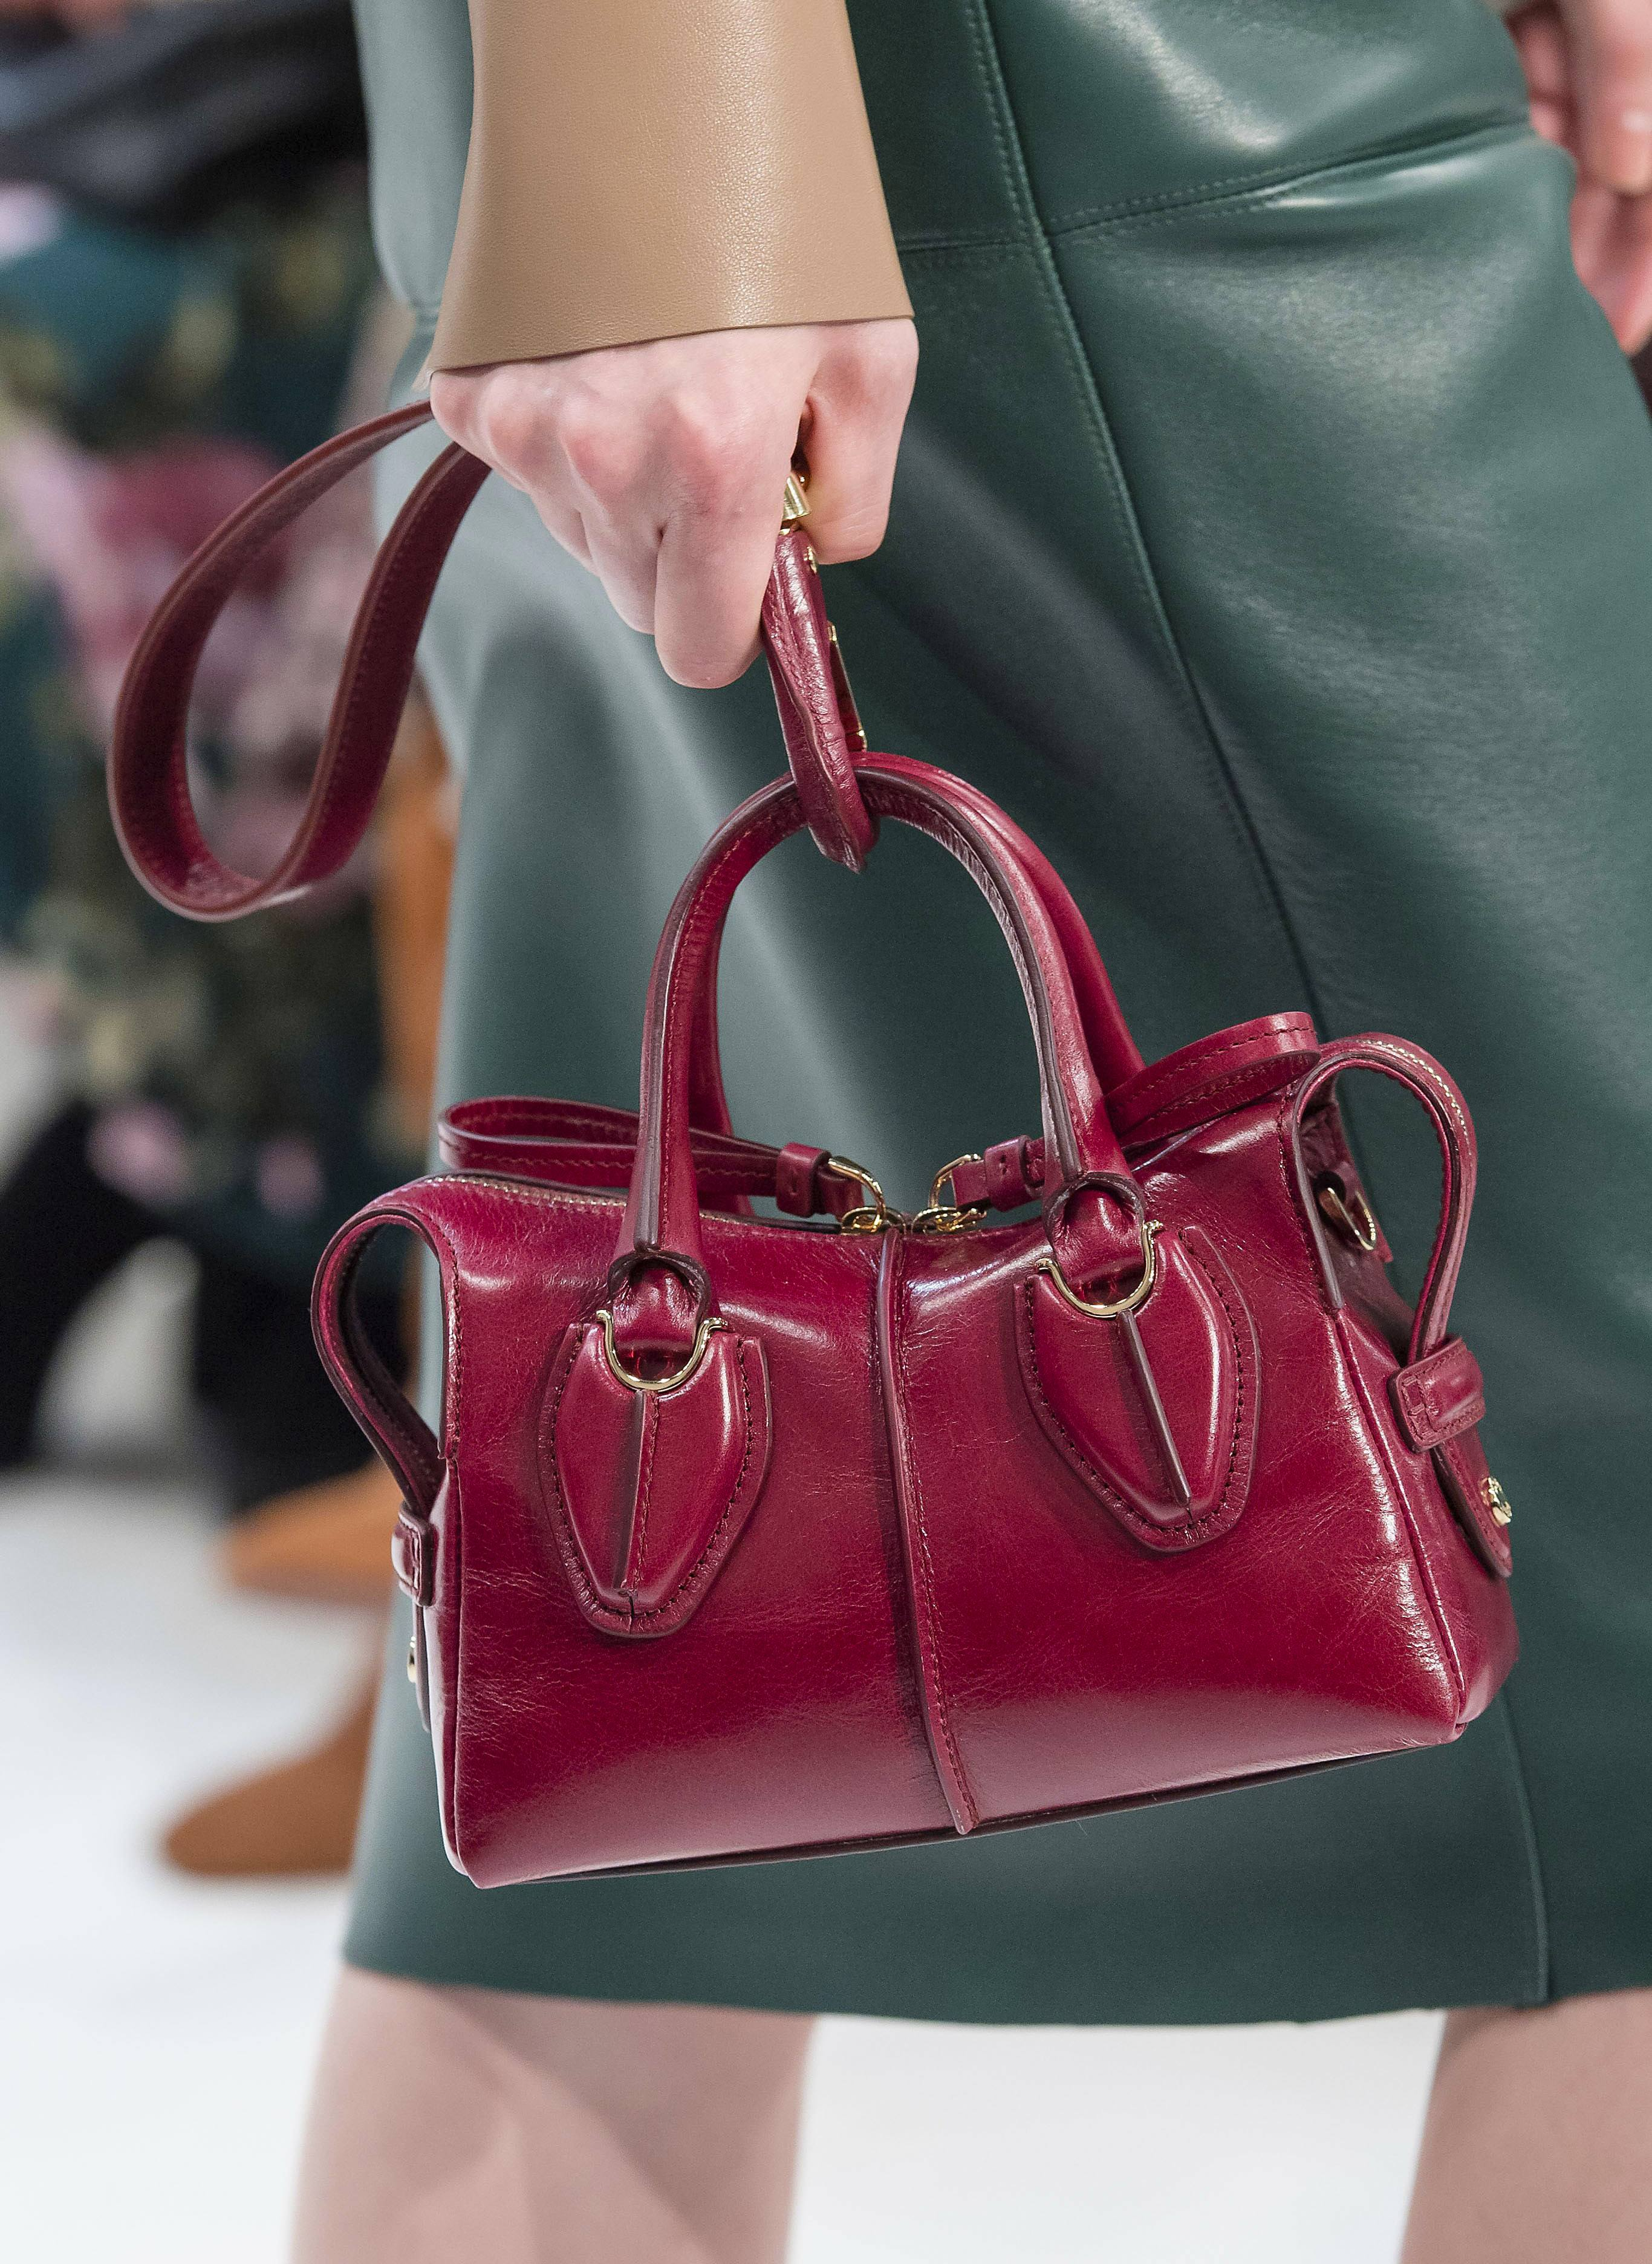 Tod's D-Styling small handbag from the Fall 2019 Runway Bag Collection